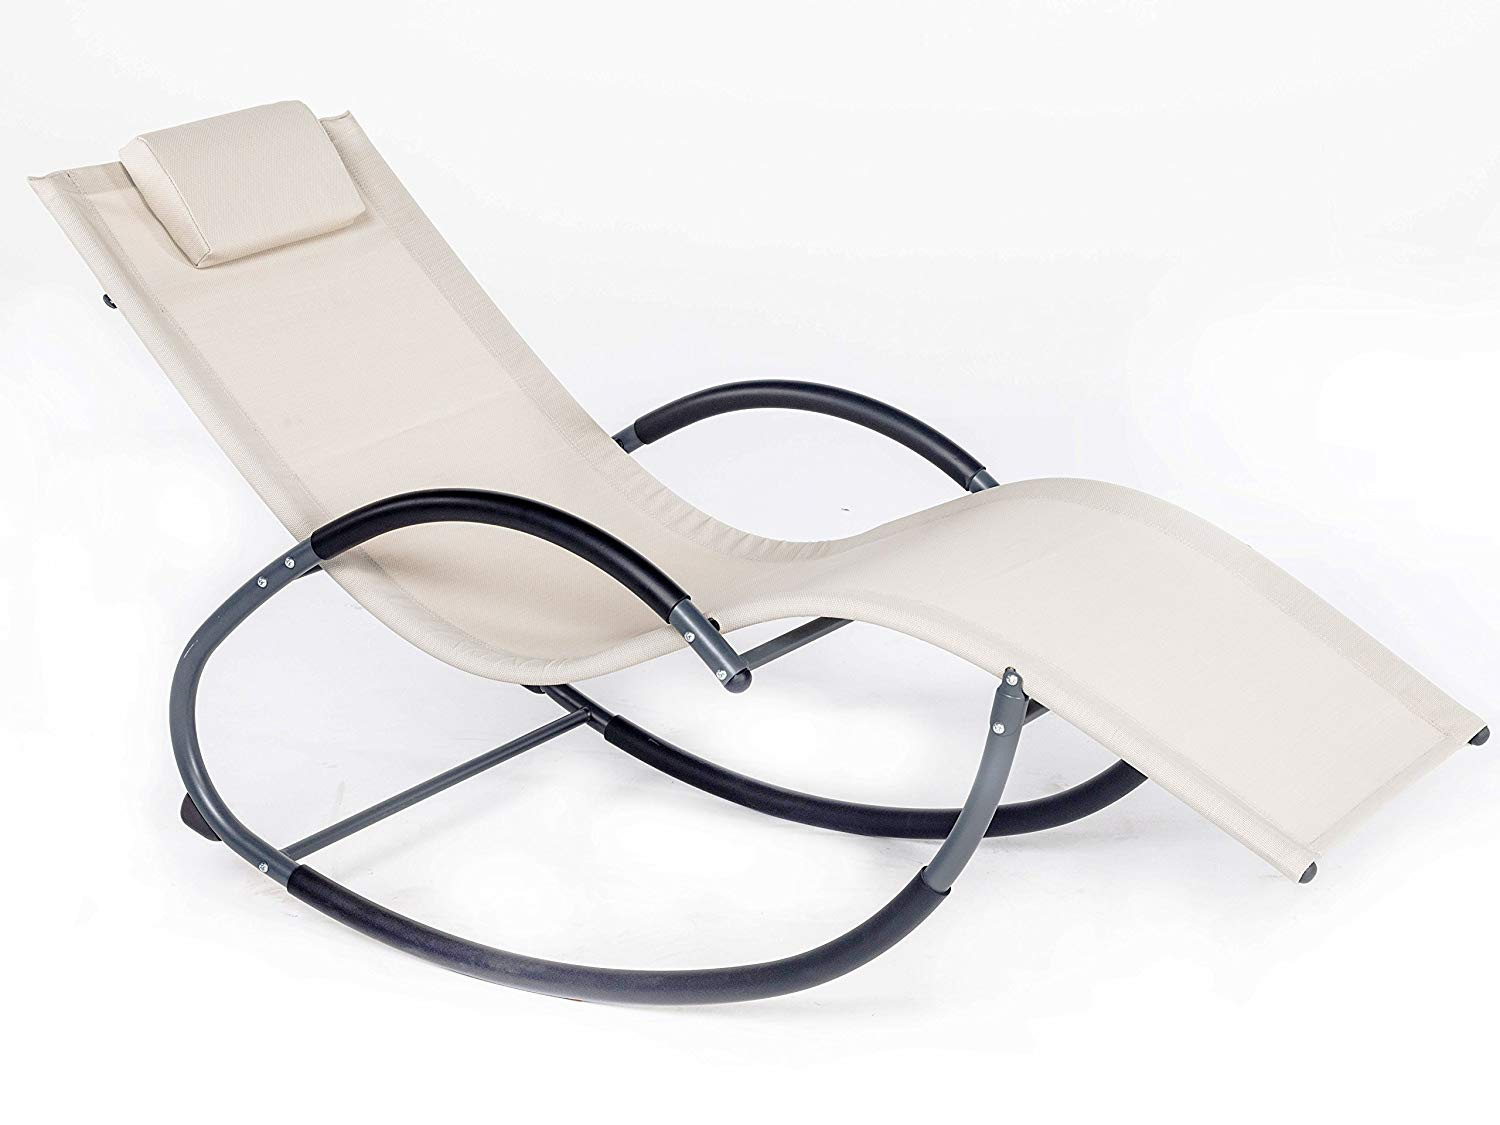 LUCKUP Outdoor Patio Iron Zero Gravity Chair Orbital Rocking Lounge Chair with Pillow Wave Rocker,Patio Chaise Lounge Rocking Lounger, Outdoor Lounge Chair (G Stlye, BEIGE)